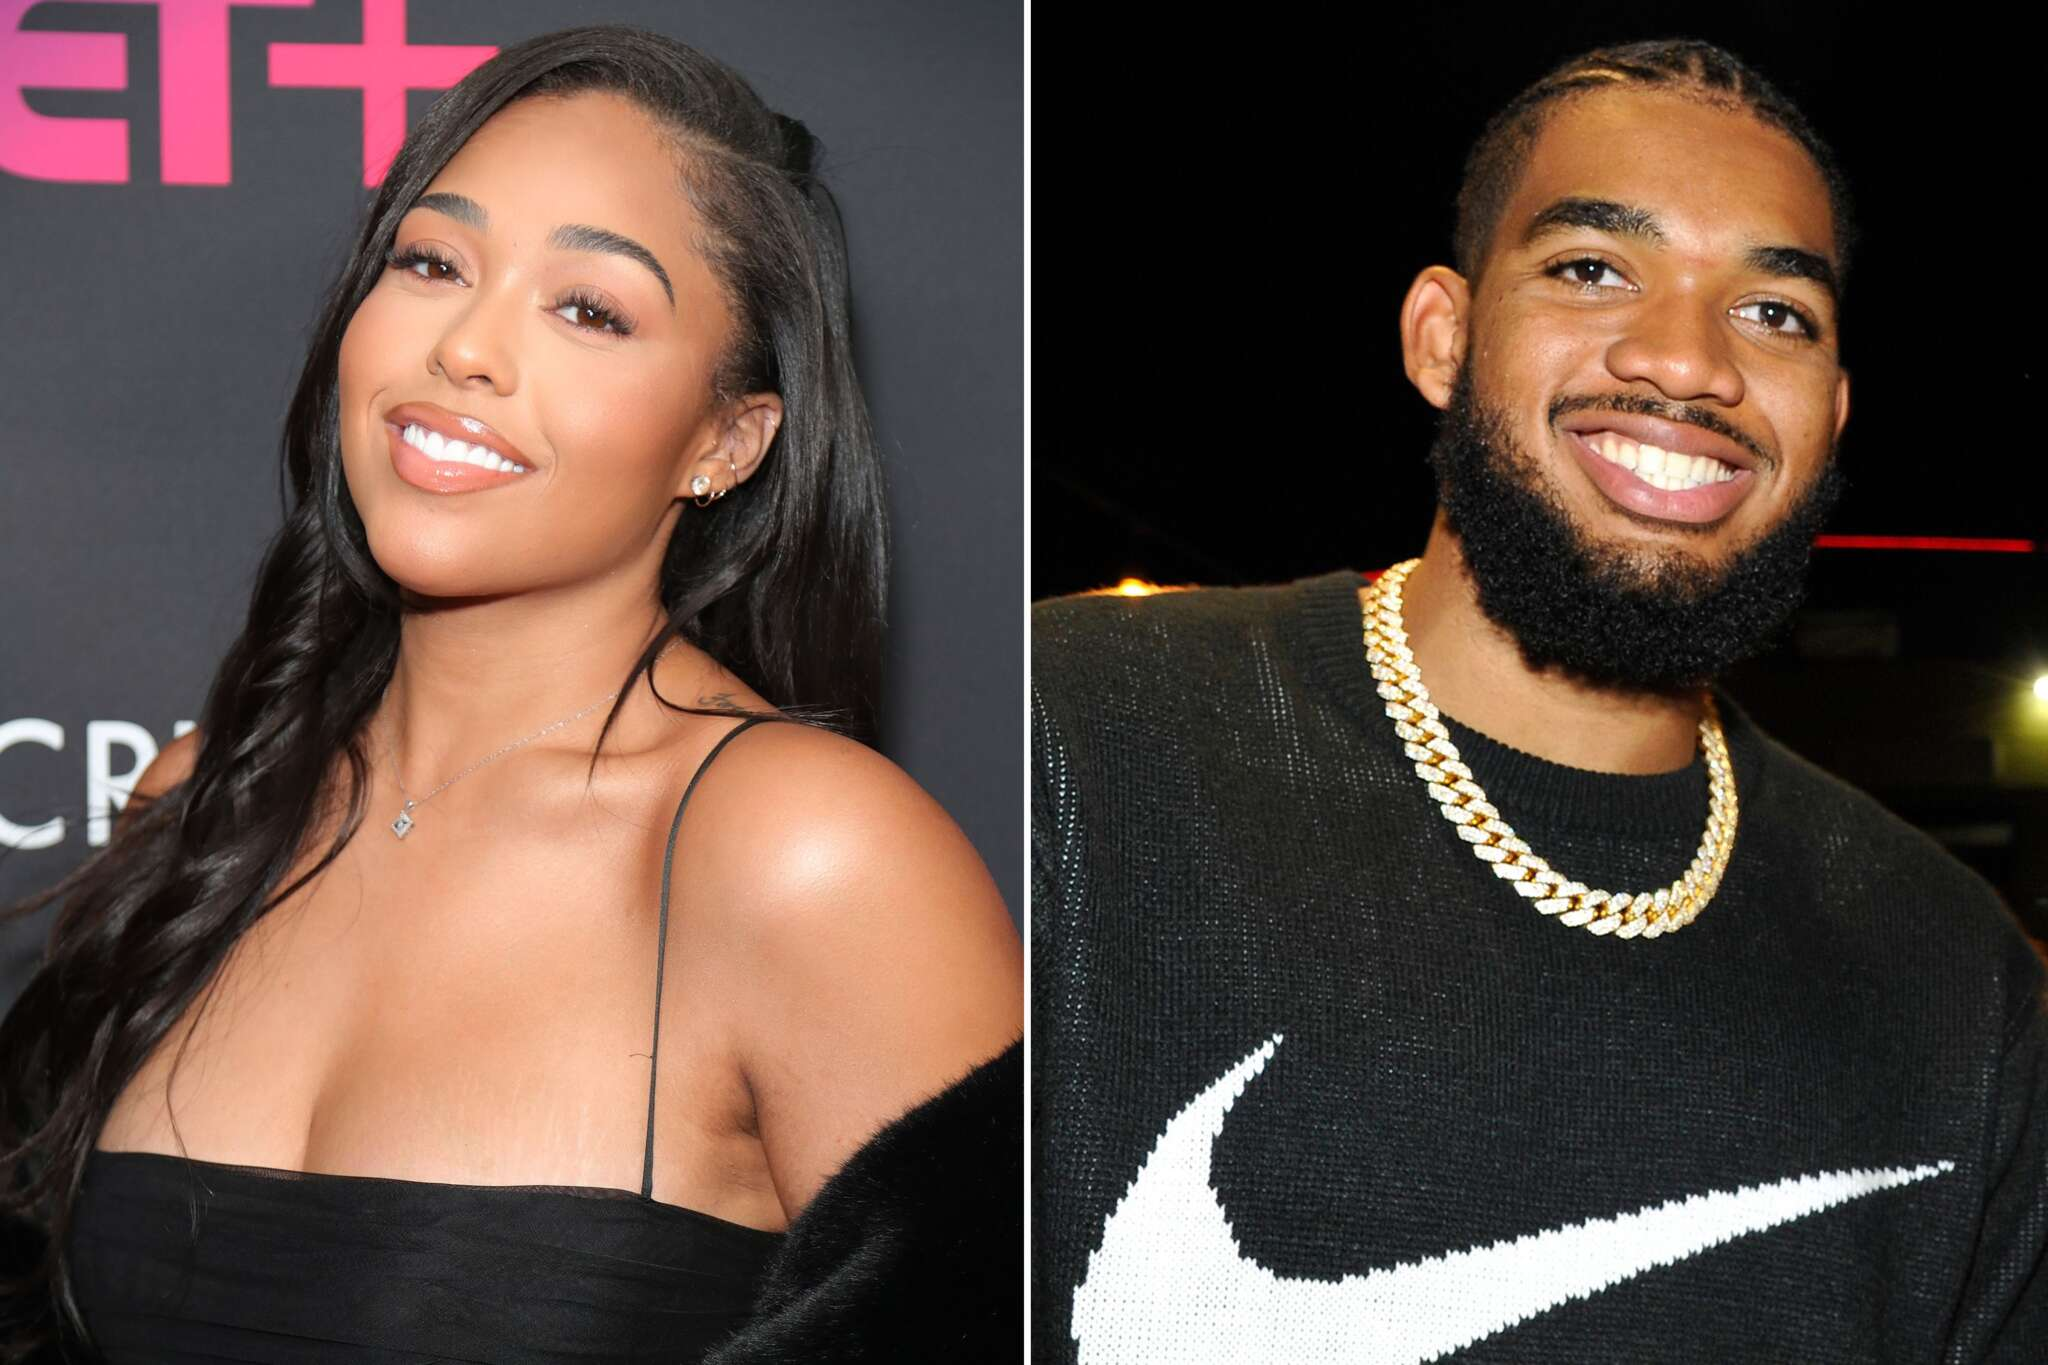 karl-anthony-towns-reportedly-already-sure-he-wants-to-marry-jordyn-woods